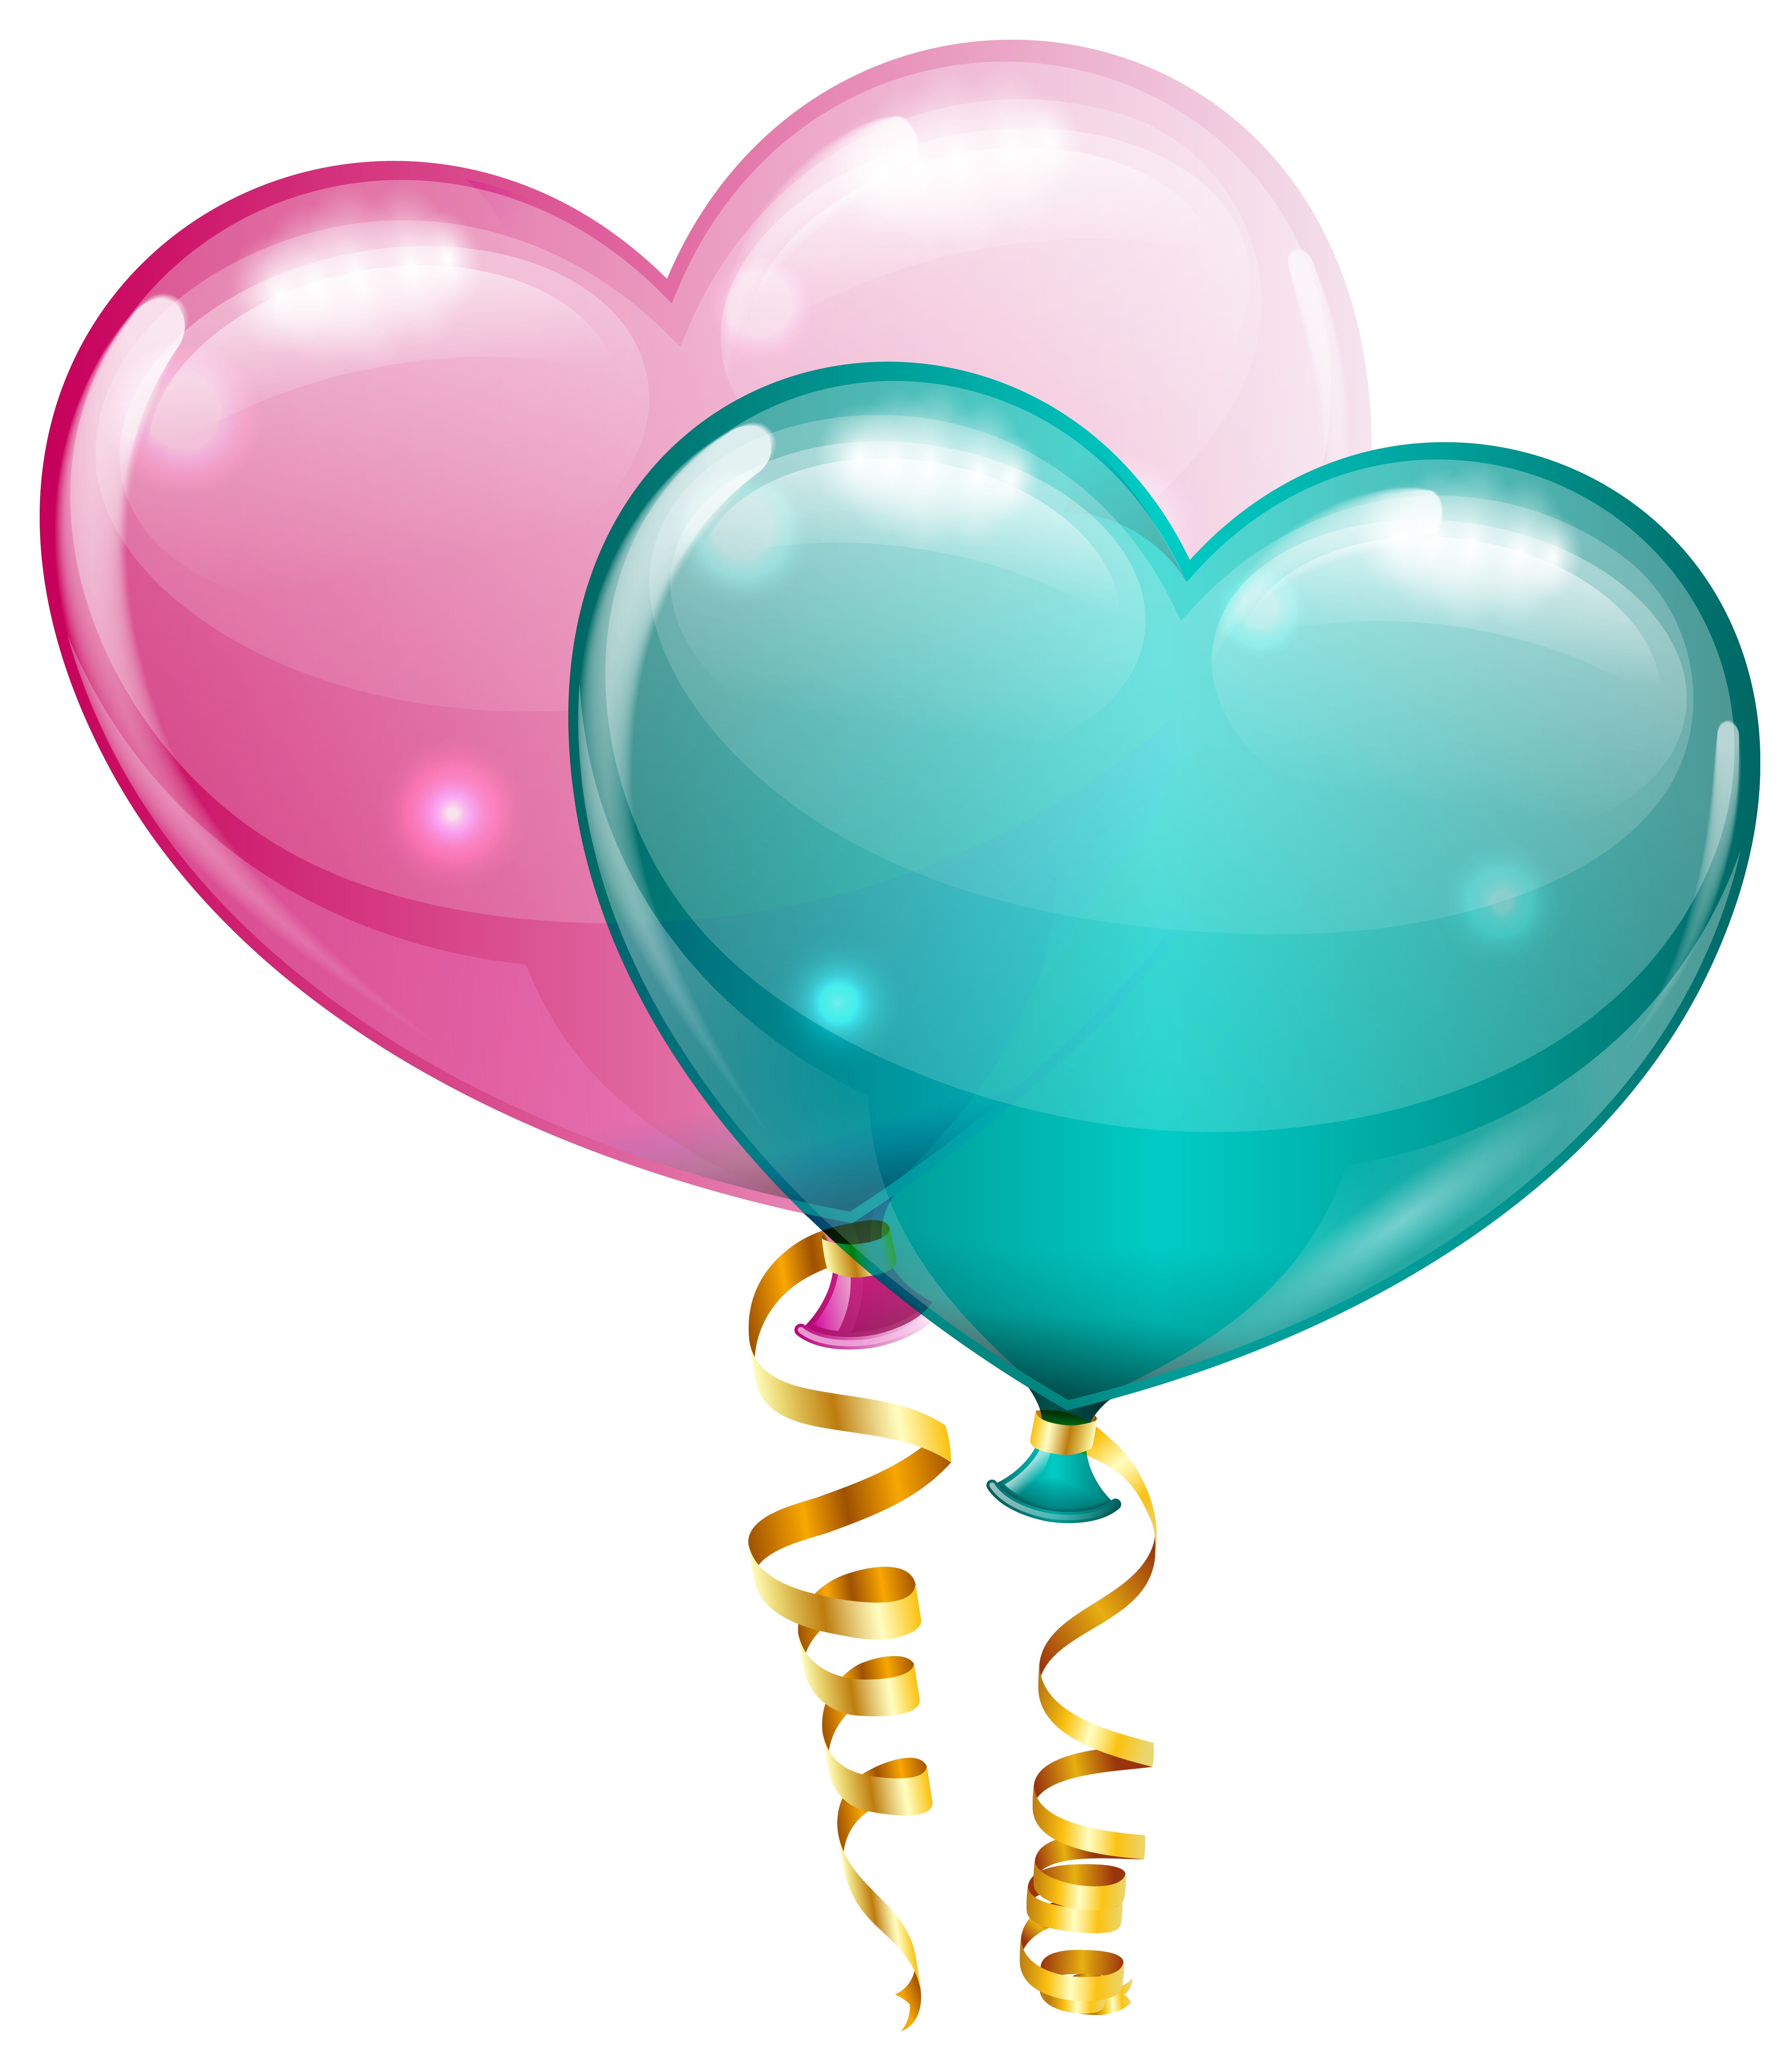 Pink balloons png. And blue heart clipart